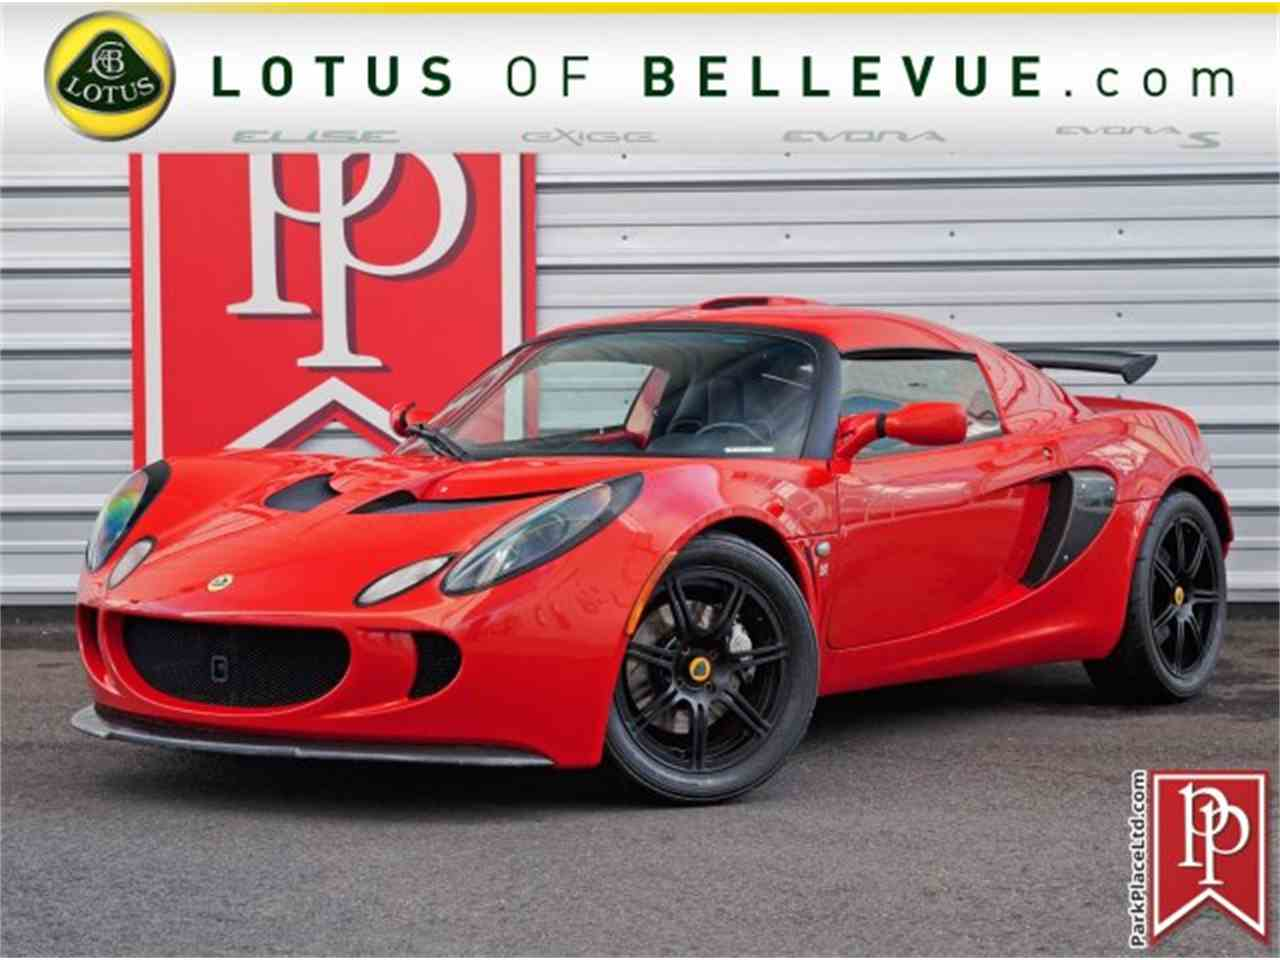 Large Picture of '06 Lotus Exige located in Washington - $39,950.00 - MCMM